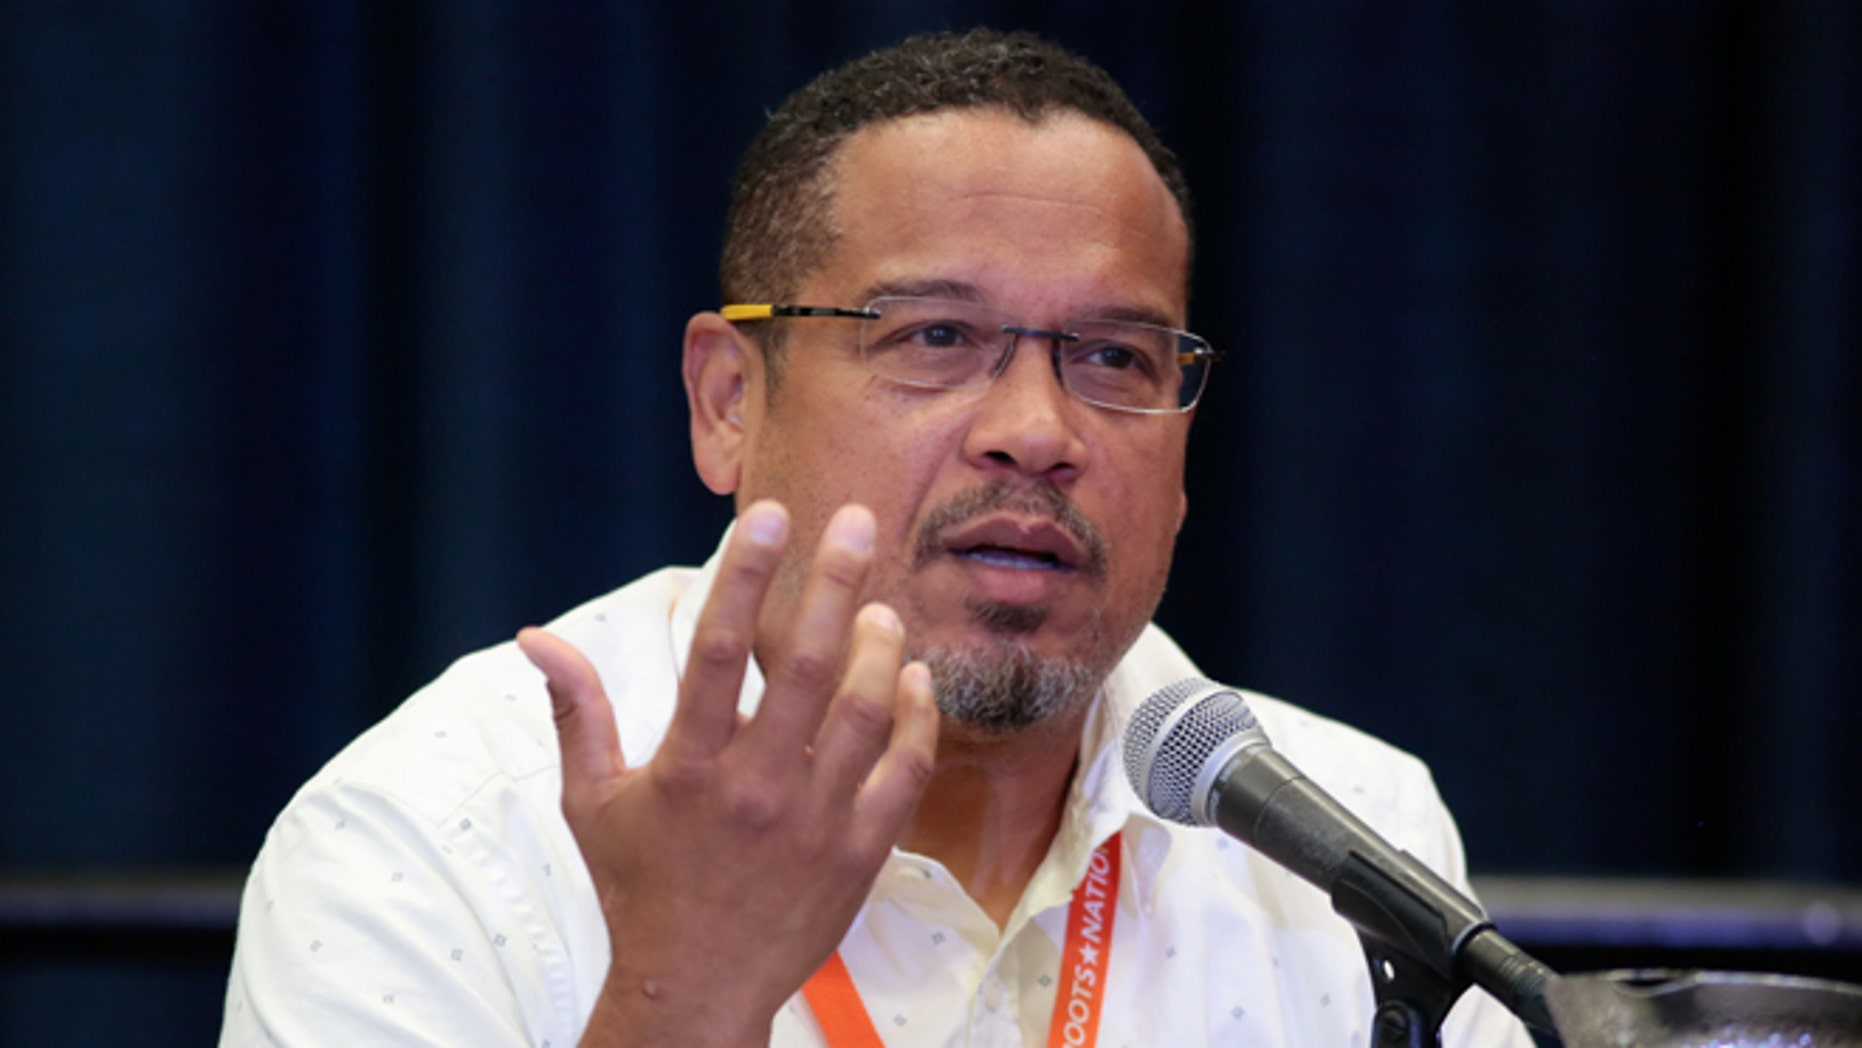 """U.S. Rep. Keith Ellison (D-MN) speaks at breakout session """"From Demonstration to Legislation: How Organizing Will Win Back Progressive Power"""" at the Netroots Nation annual conference for political progressives in Atlanta, Georgia, U.S. August 11, 2017. REUTERS/Christopher Aluka Berry - RC16E71BABE0"""